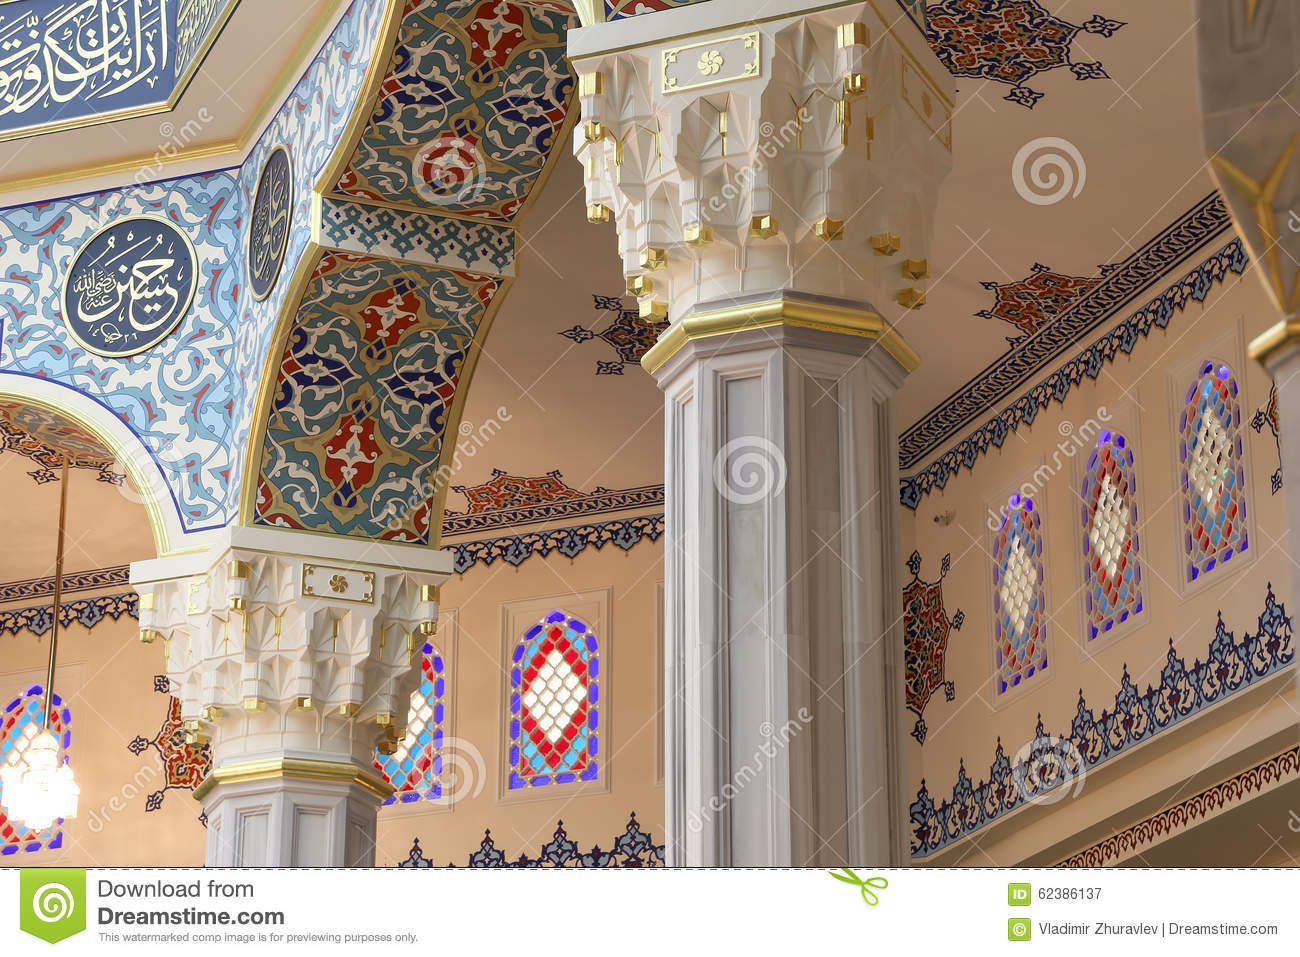 Moscow Cathedral Mosque (interior), Russia -- the main mosque in Moscow, new landmark